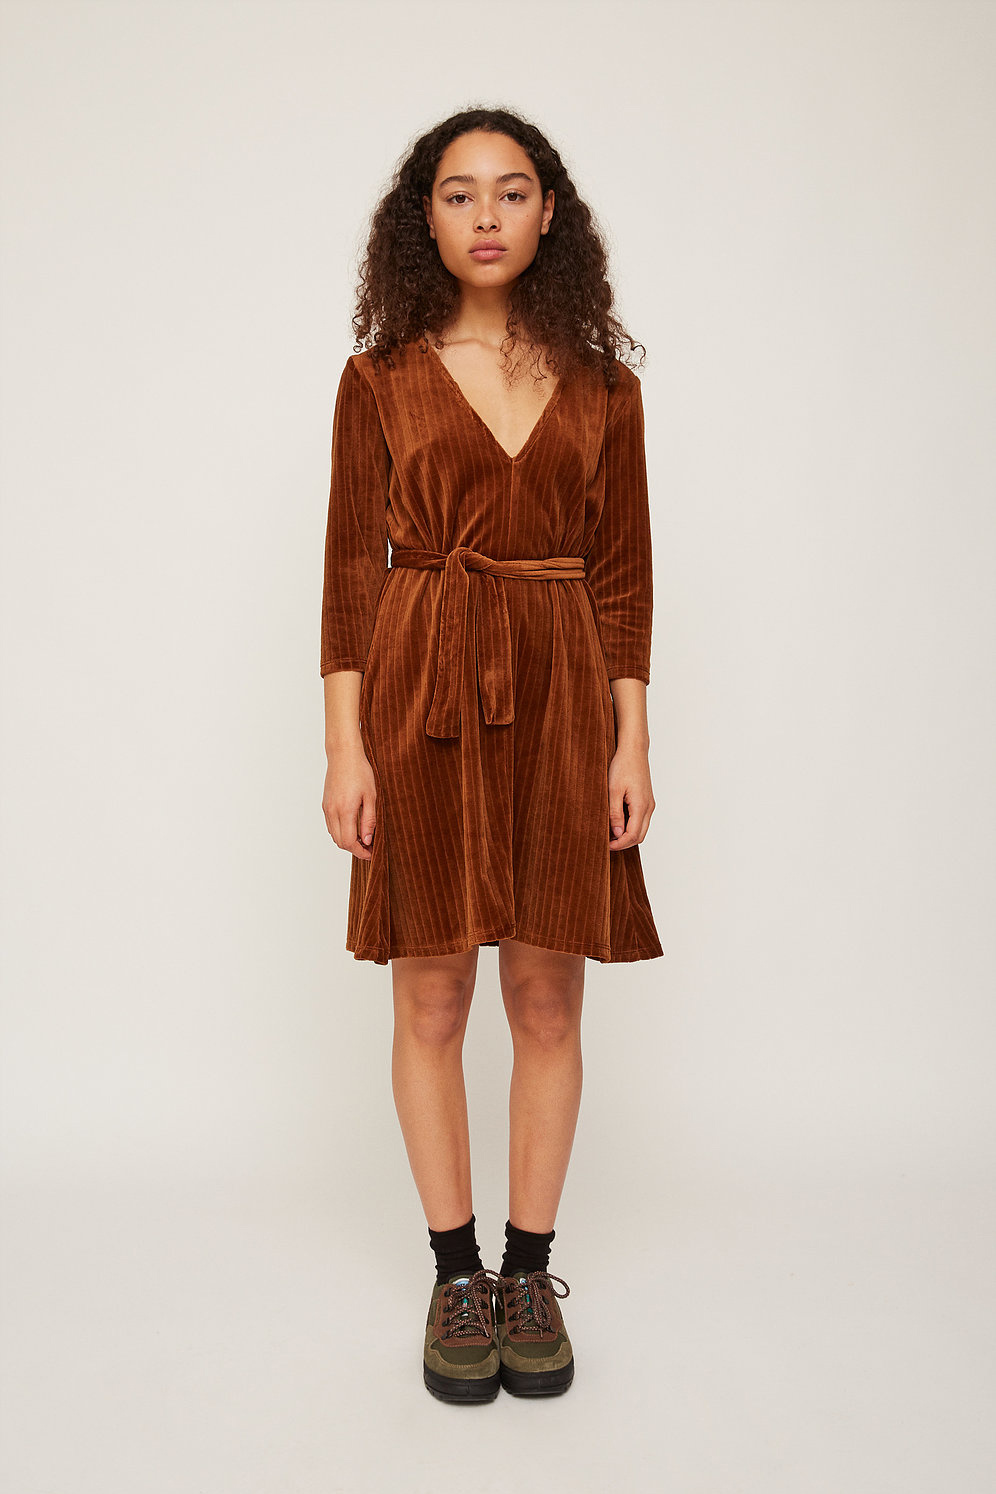 Rita Row Velvet Dress in Brown